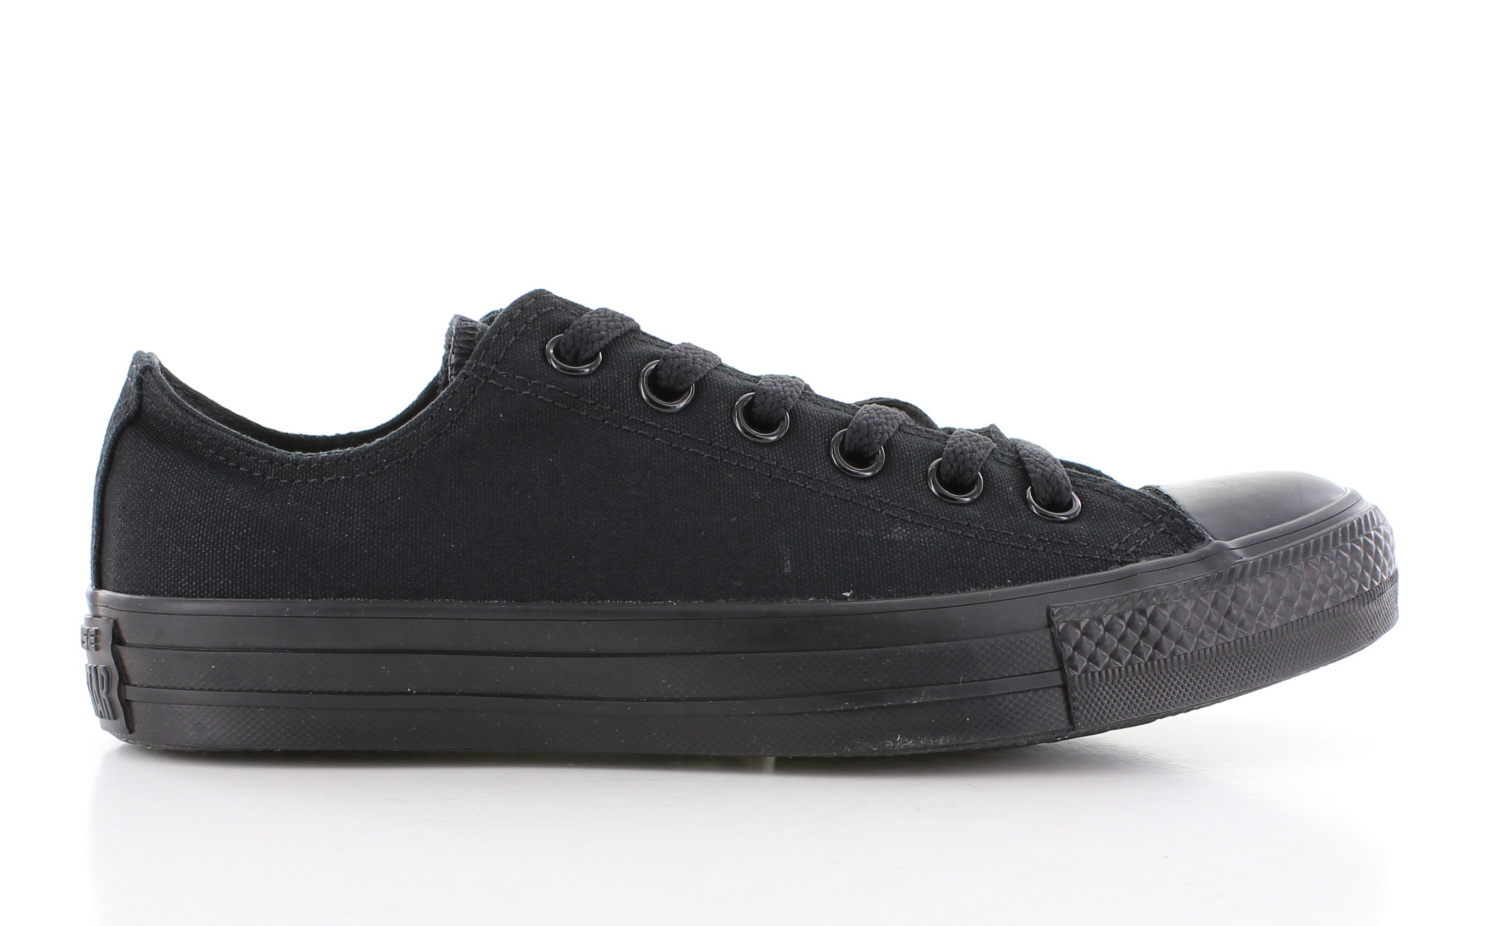 Image of Converse All Star Low Ox Zwart/zwart Dames